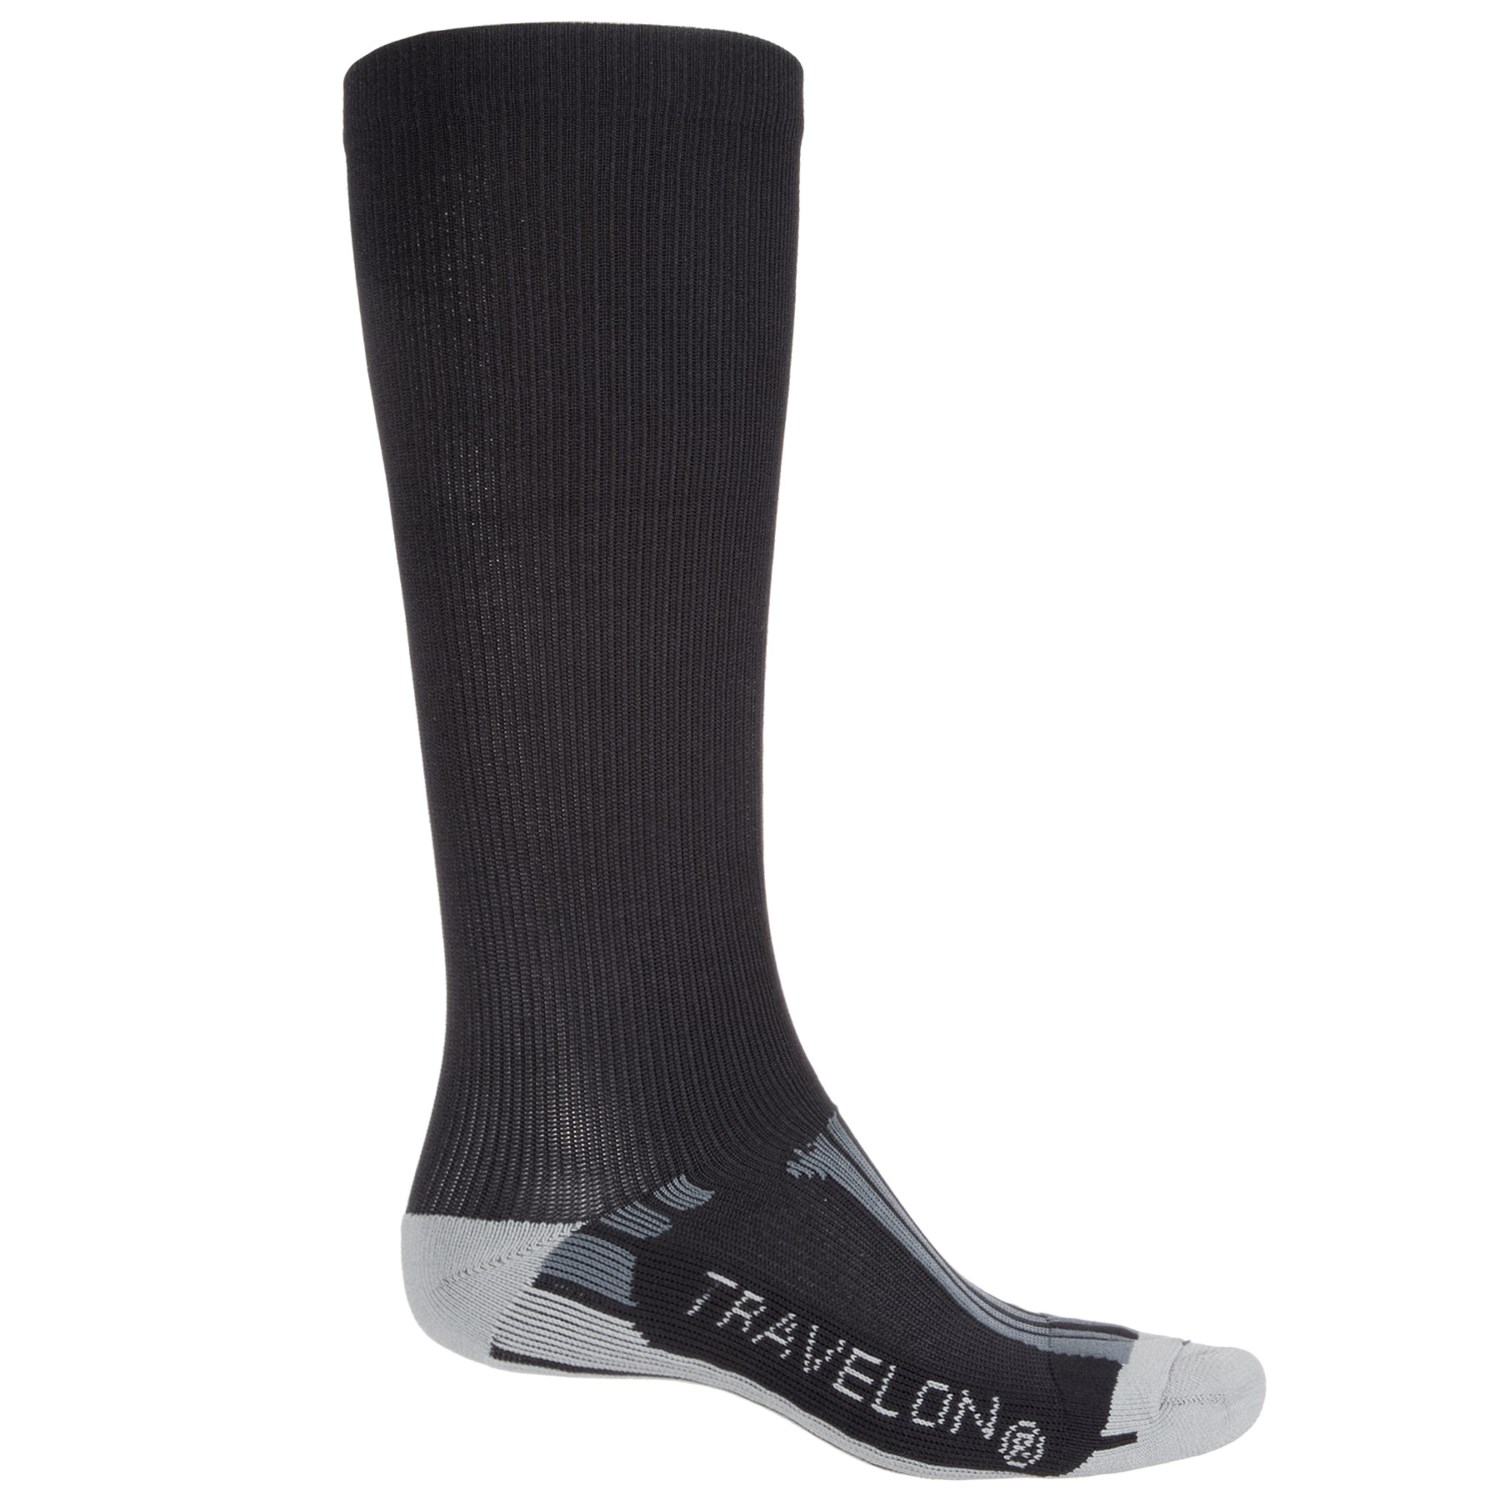 Travelon Travel and Sport Compression Socks - Medium (For Men and Women)